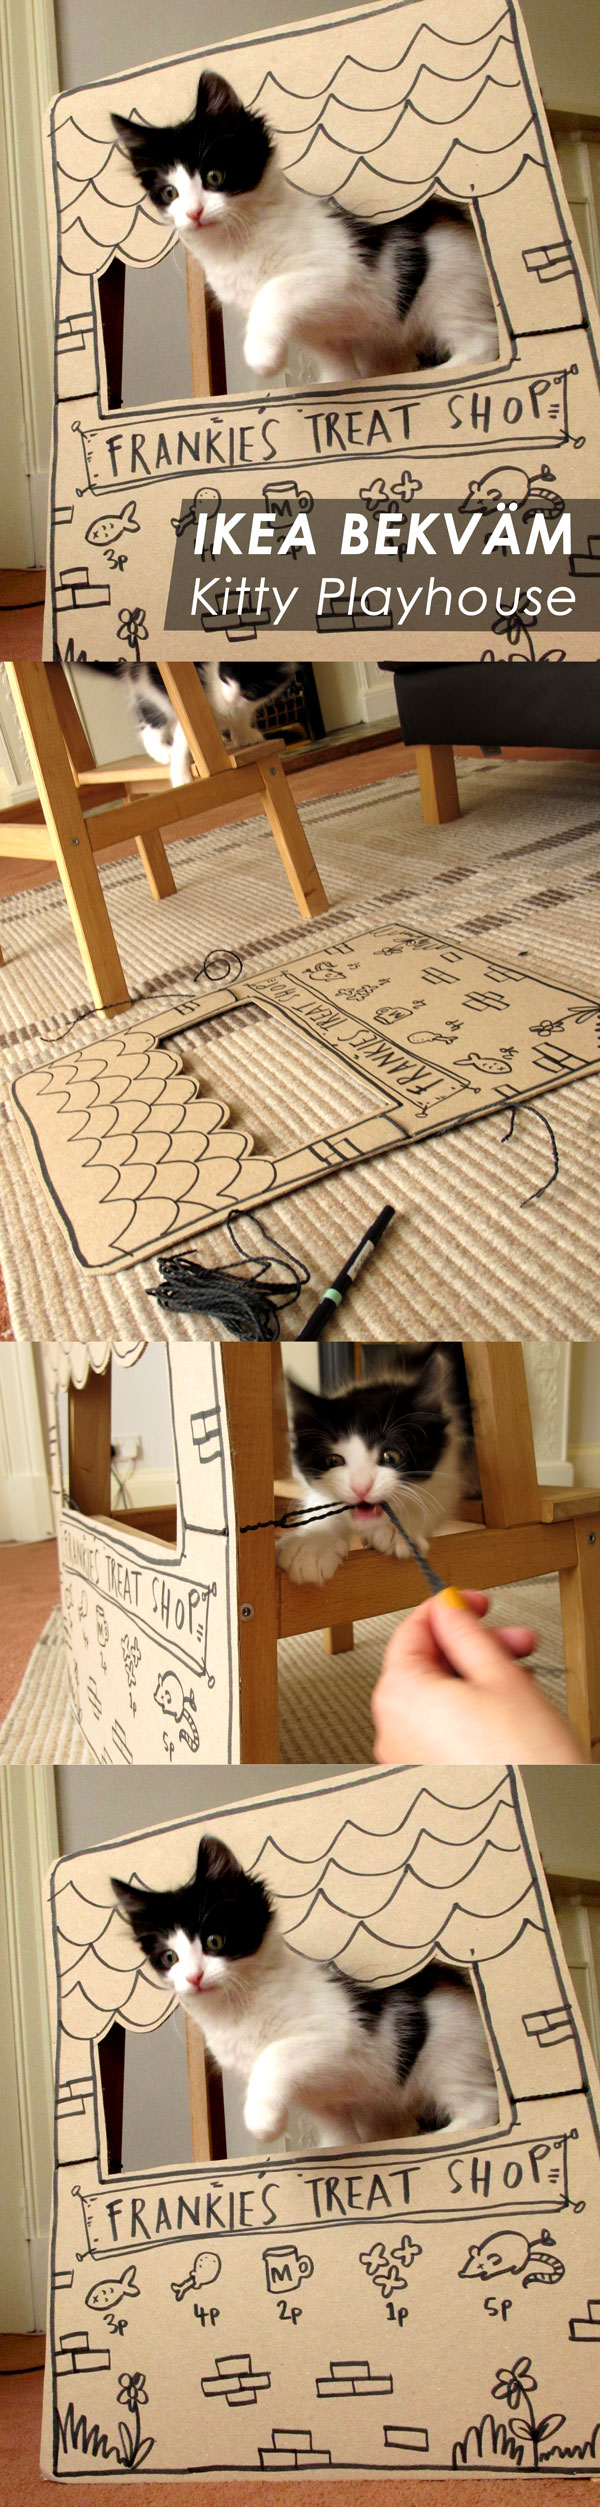 IKEA Bekvam Kitty Playhouse DIY by Nikki McWilliams